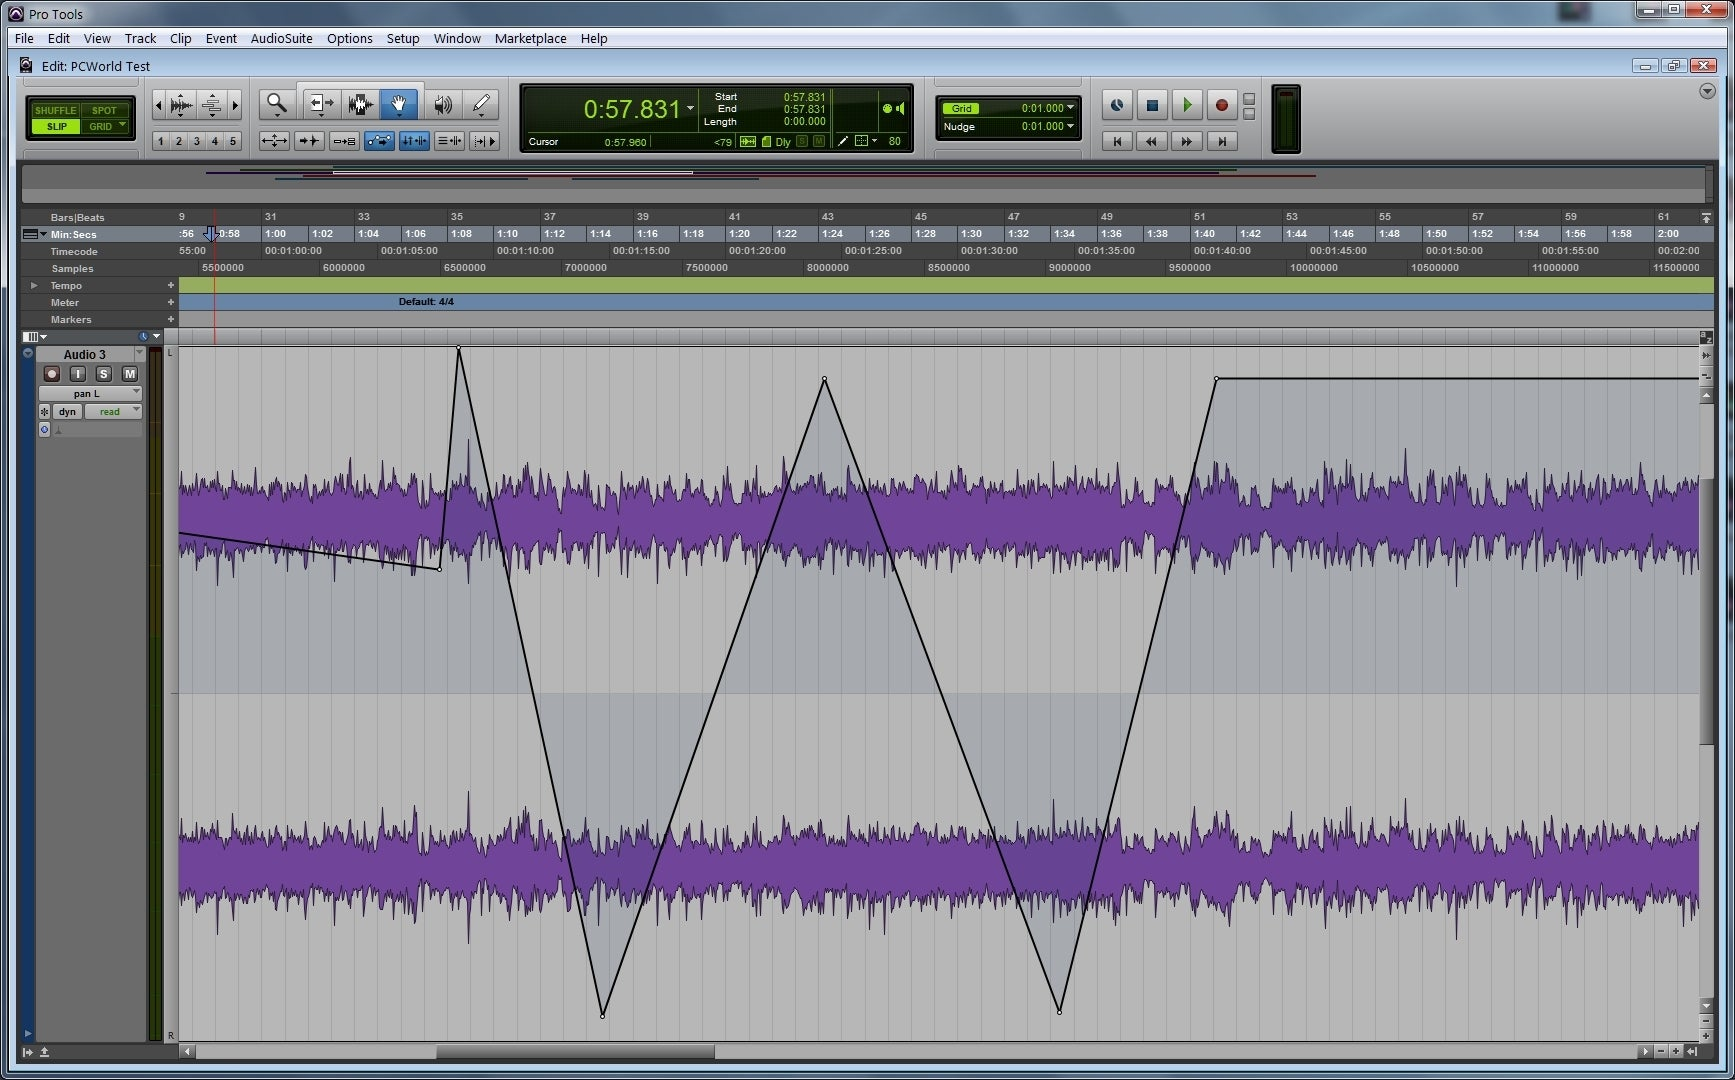 Avid Pro Tools review: This studio-style software will appeal to